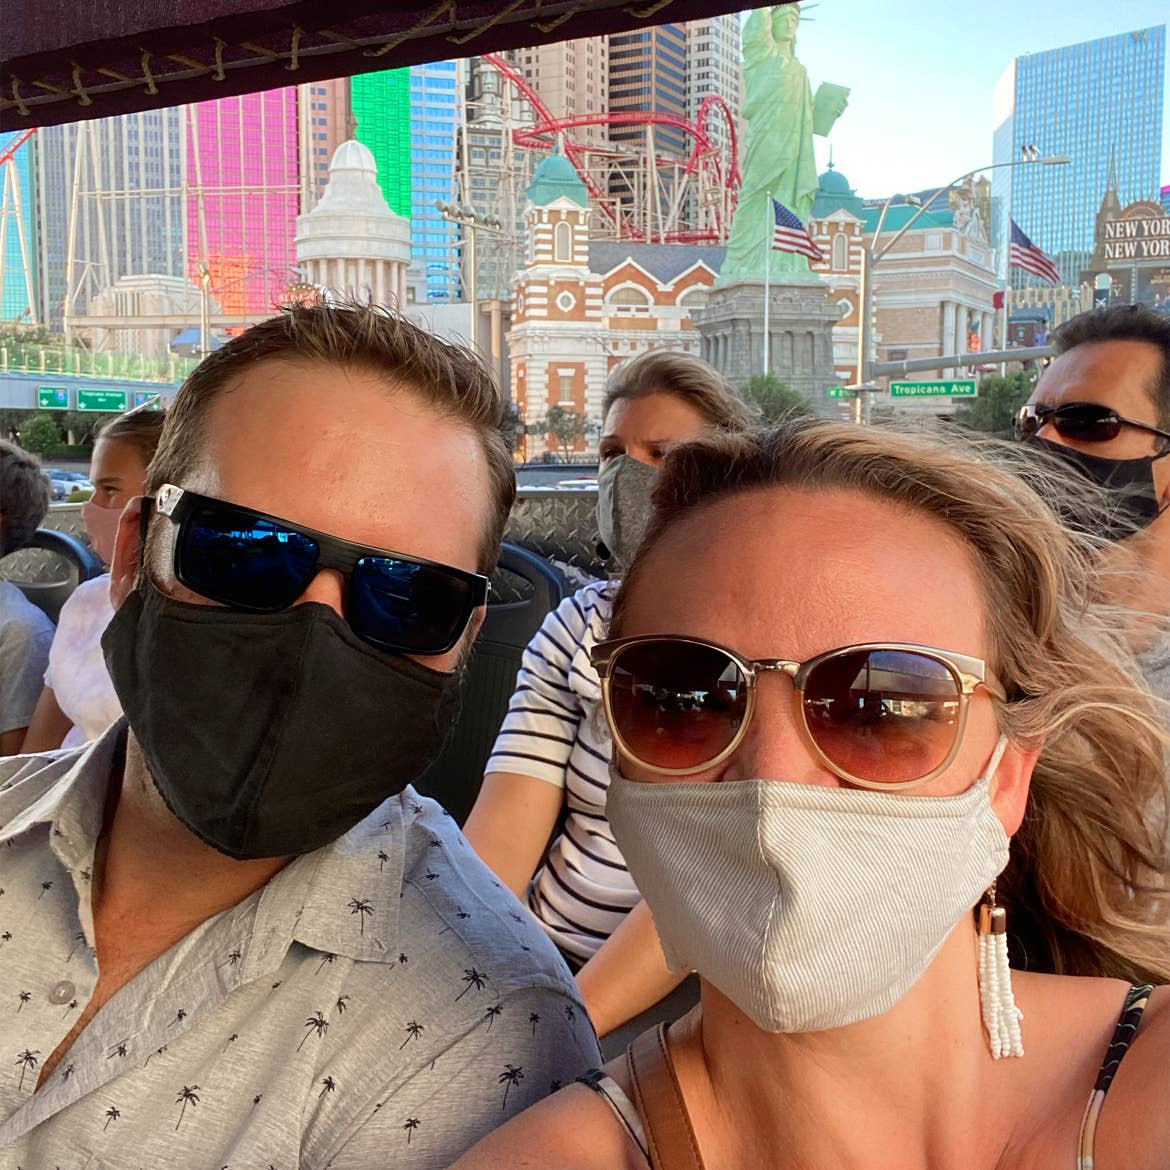 A caucasian woman wearing sunglasses and a face mask (right) poses near a caucasian man wearing sunglasses and a face mask (left) while seated on a double decker bus tour near the Las Vegas Strip.